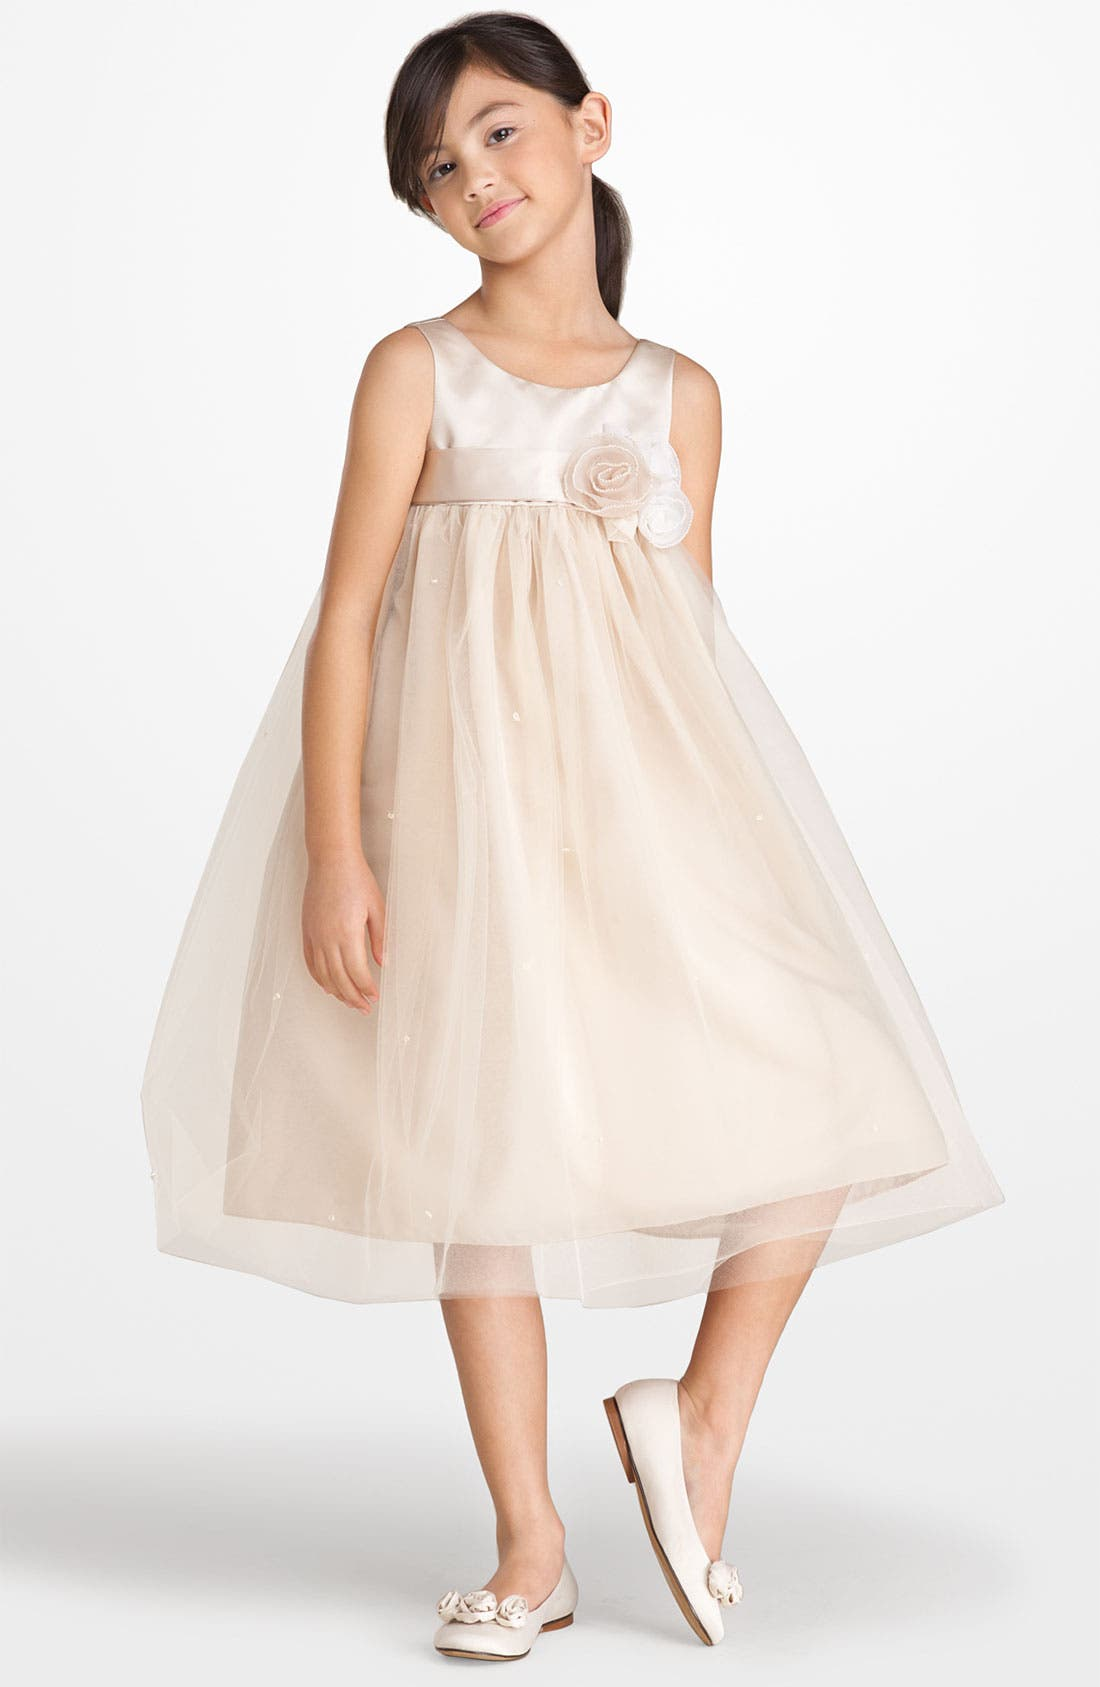 Main Image - Us Angels Sleeveless Satin & Tulle Dress (Little Girls)